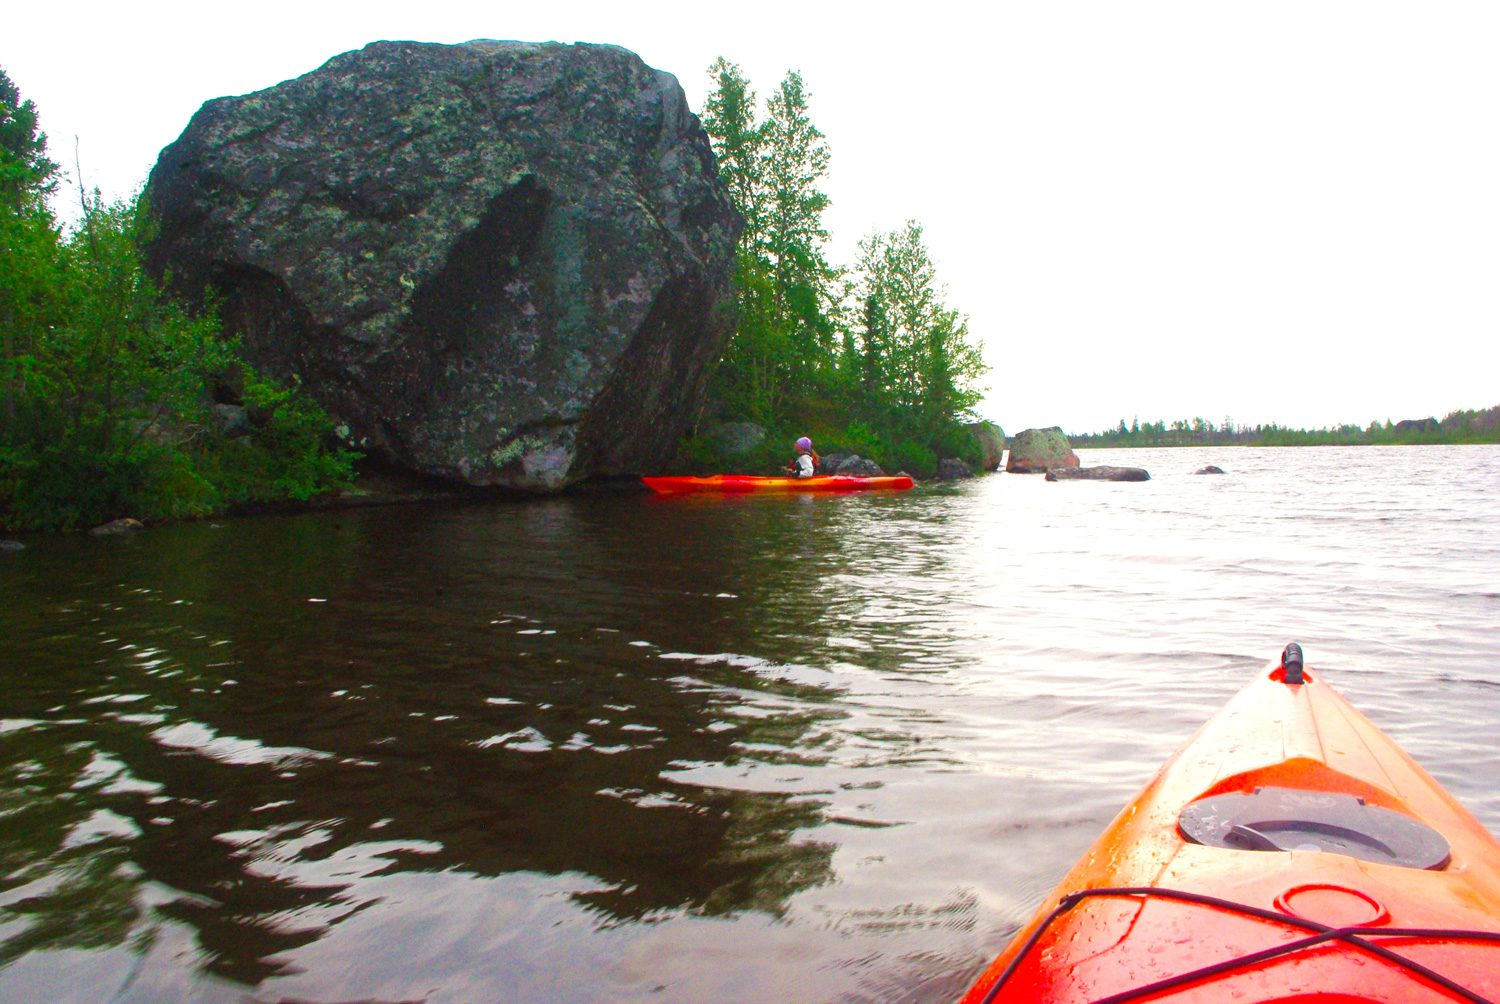 Two people kayaking next to the Andrea Erratic